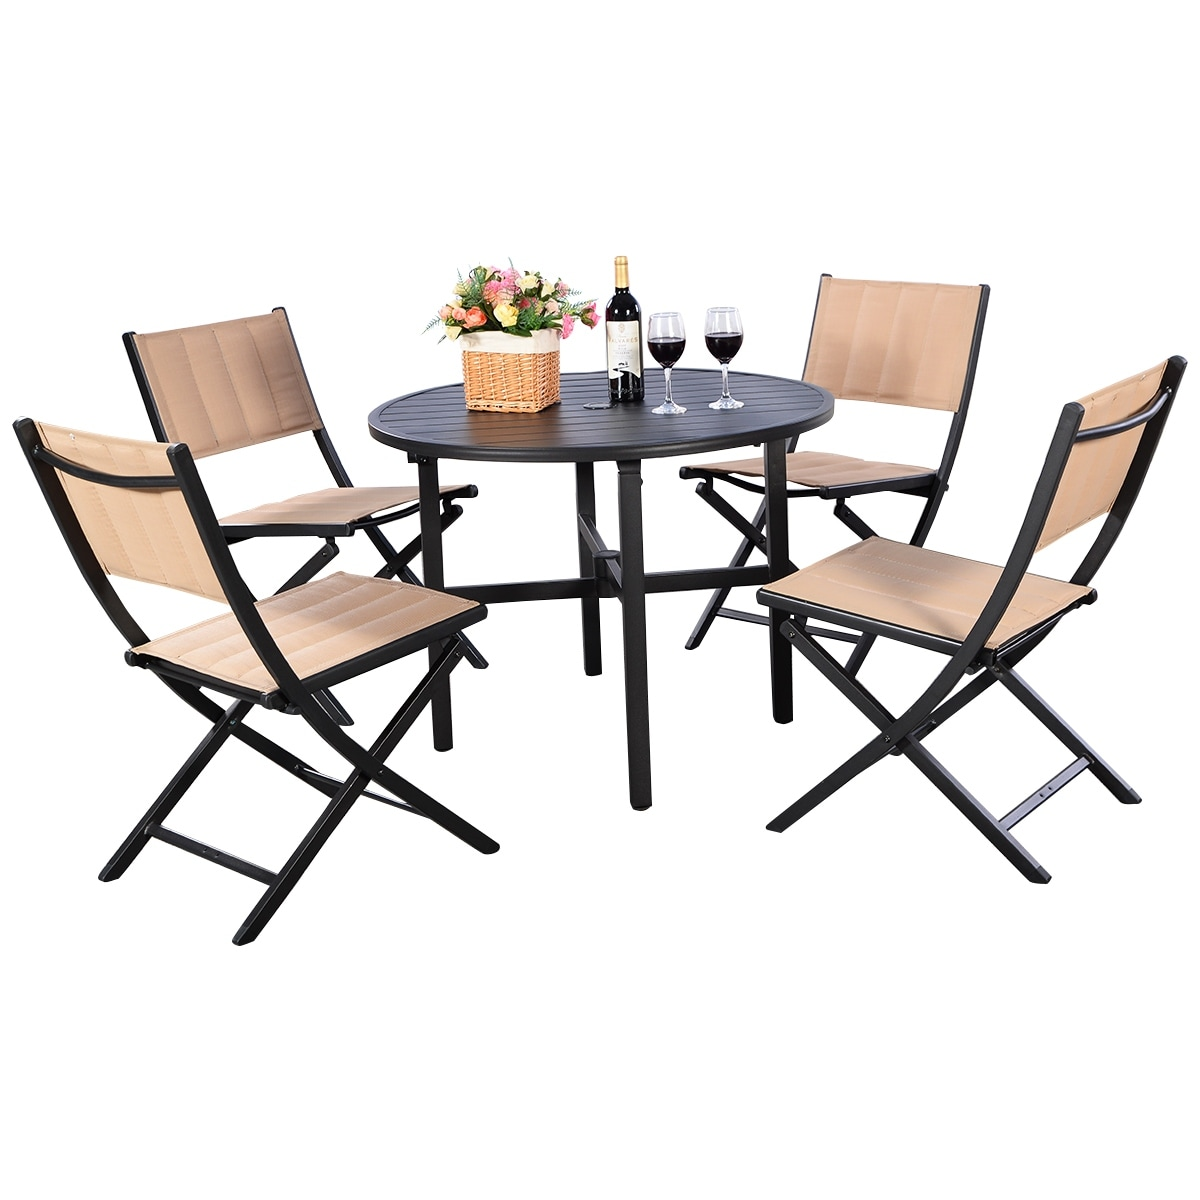 Patio Folding Chairs Costway 5 Pcs Patio Outdoor Folding Chairs Table Furniture Set Backyard Bistro